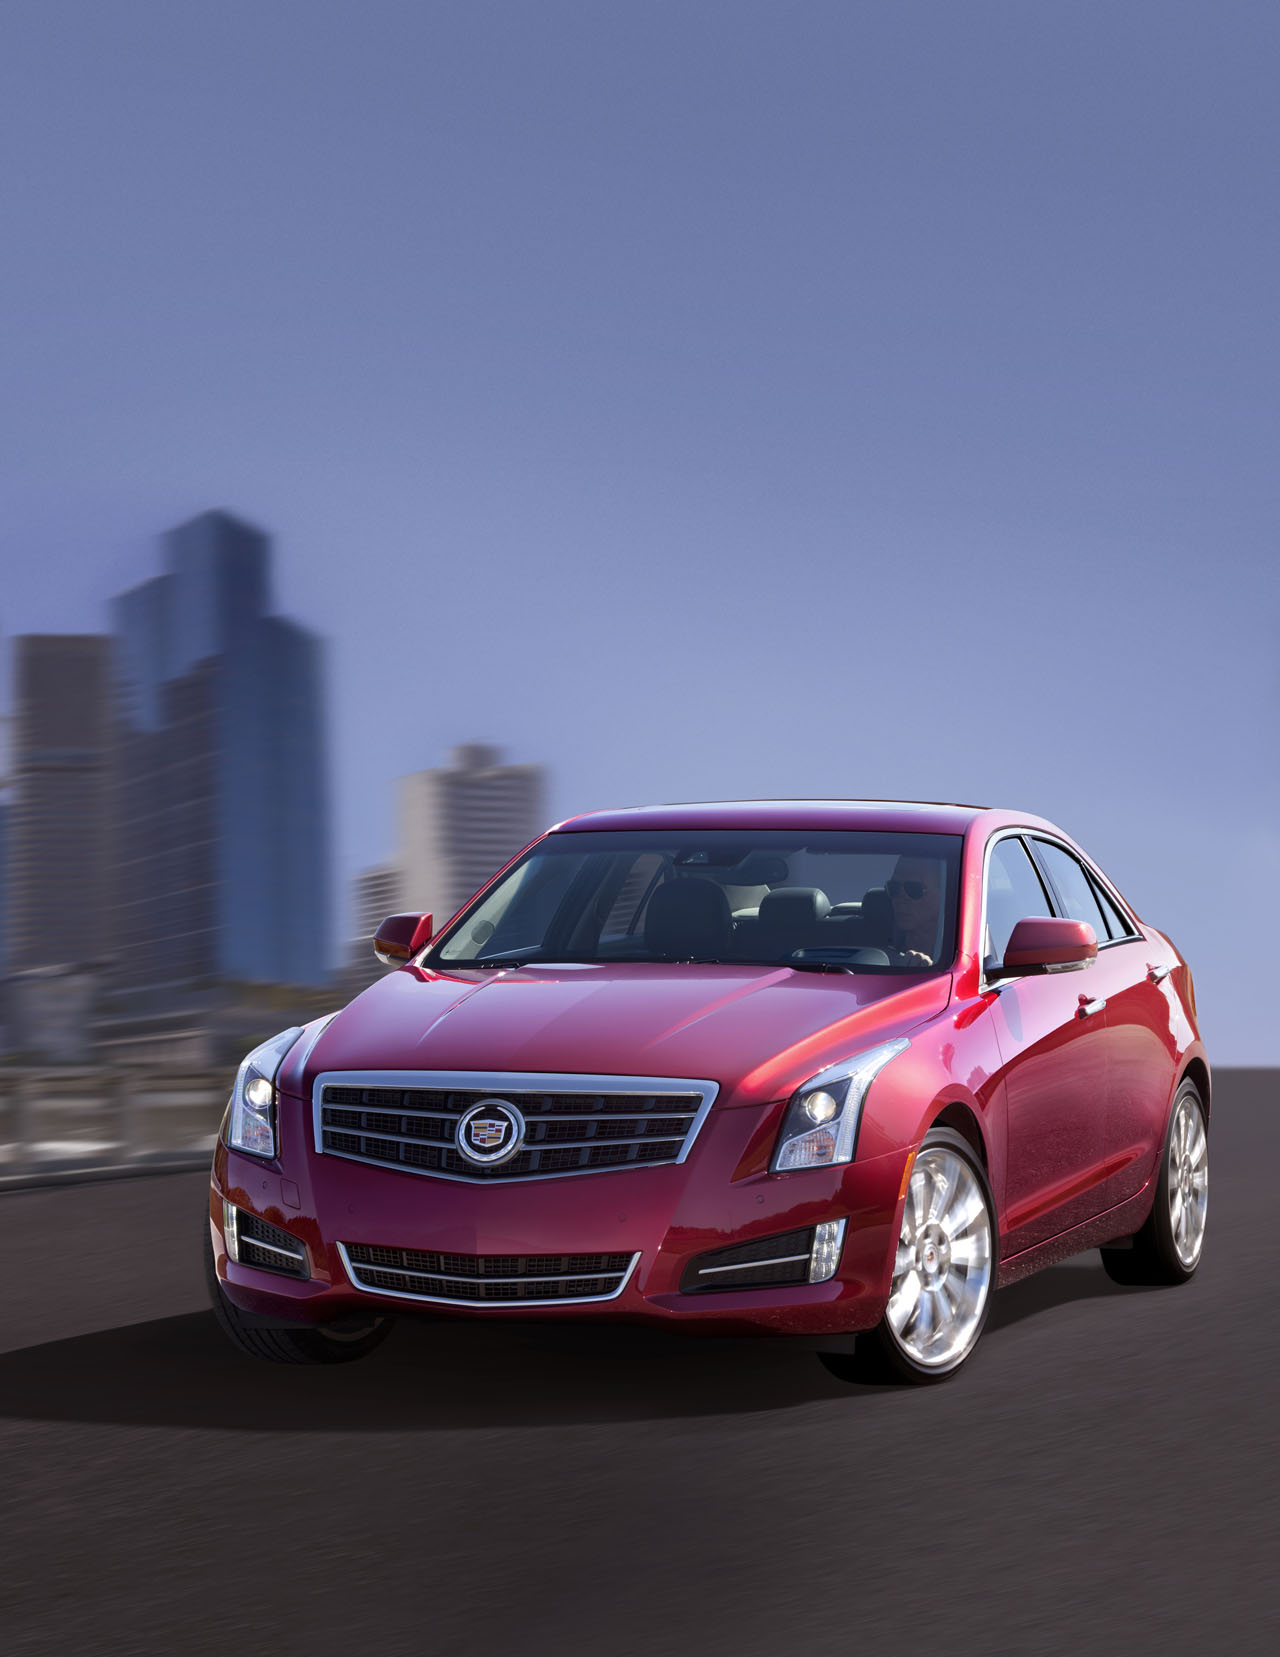 dealer cadillac gm the quo detroit digital challenges status ats